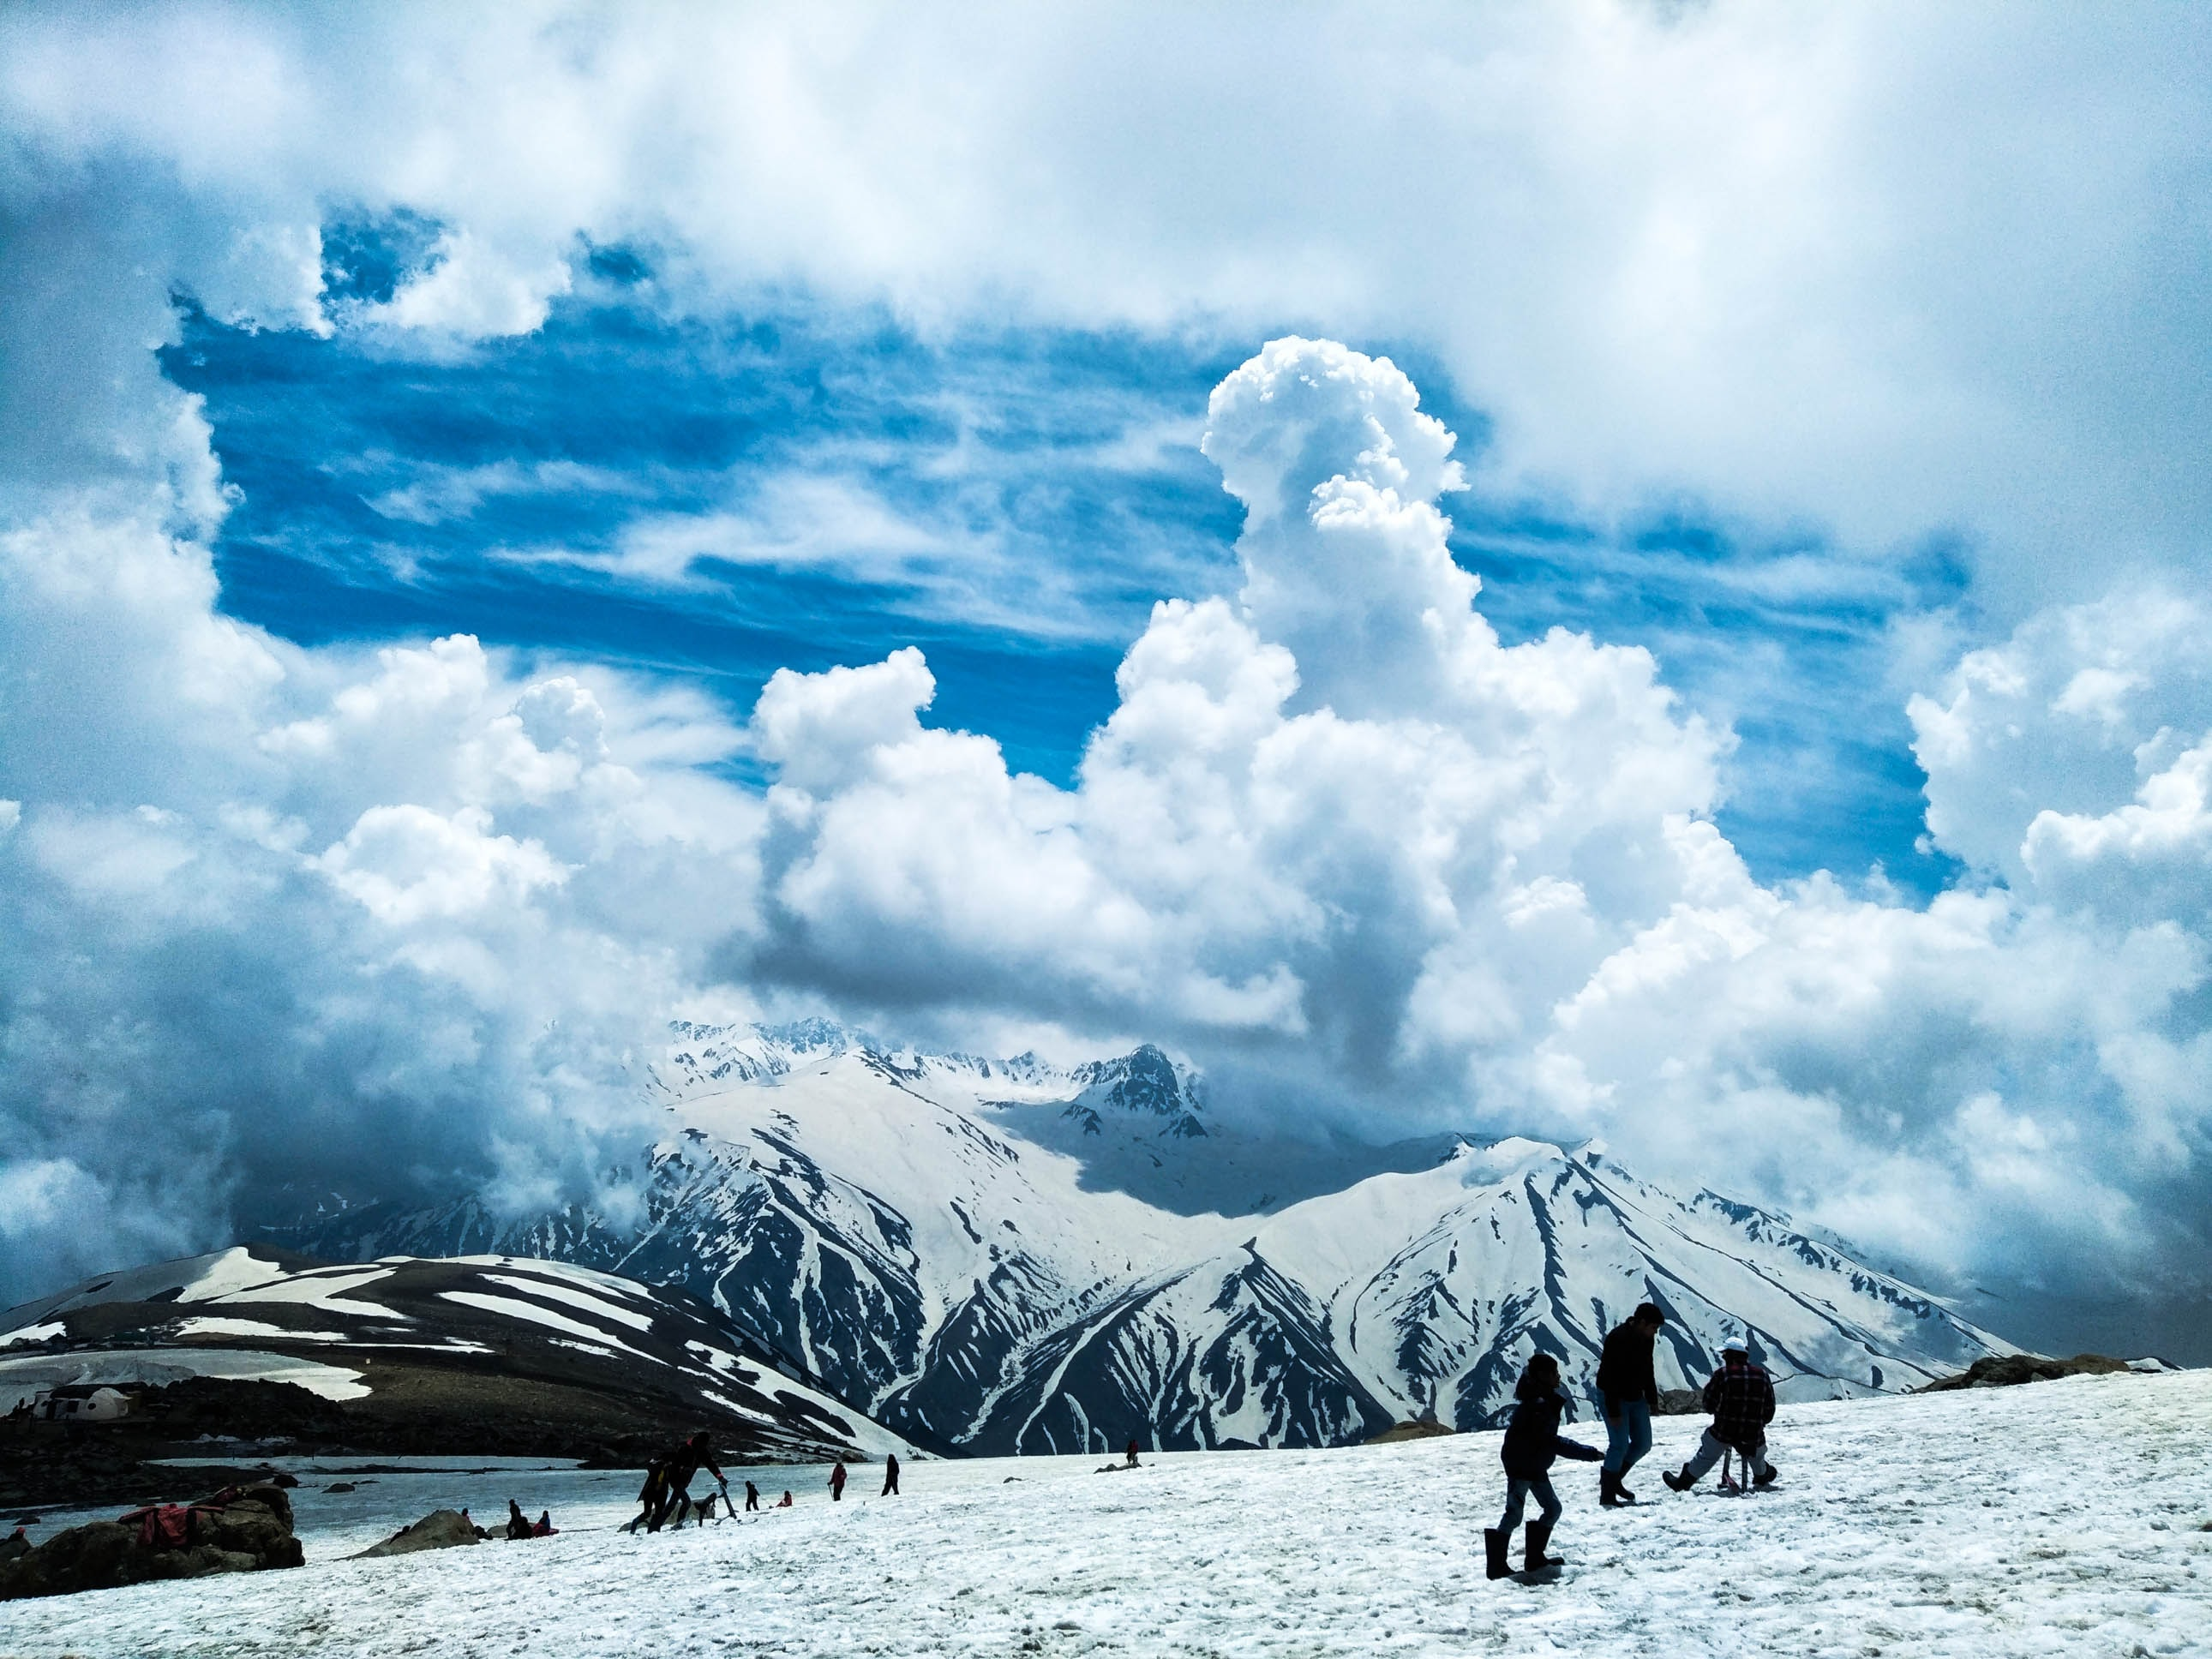 people standing on snow covered ground near mountains at daytime